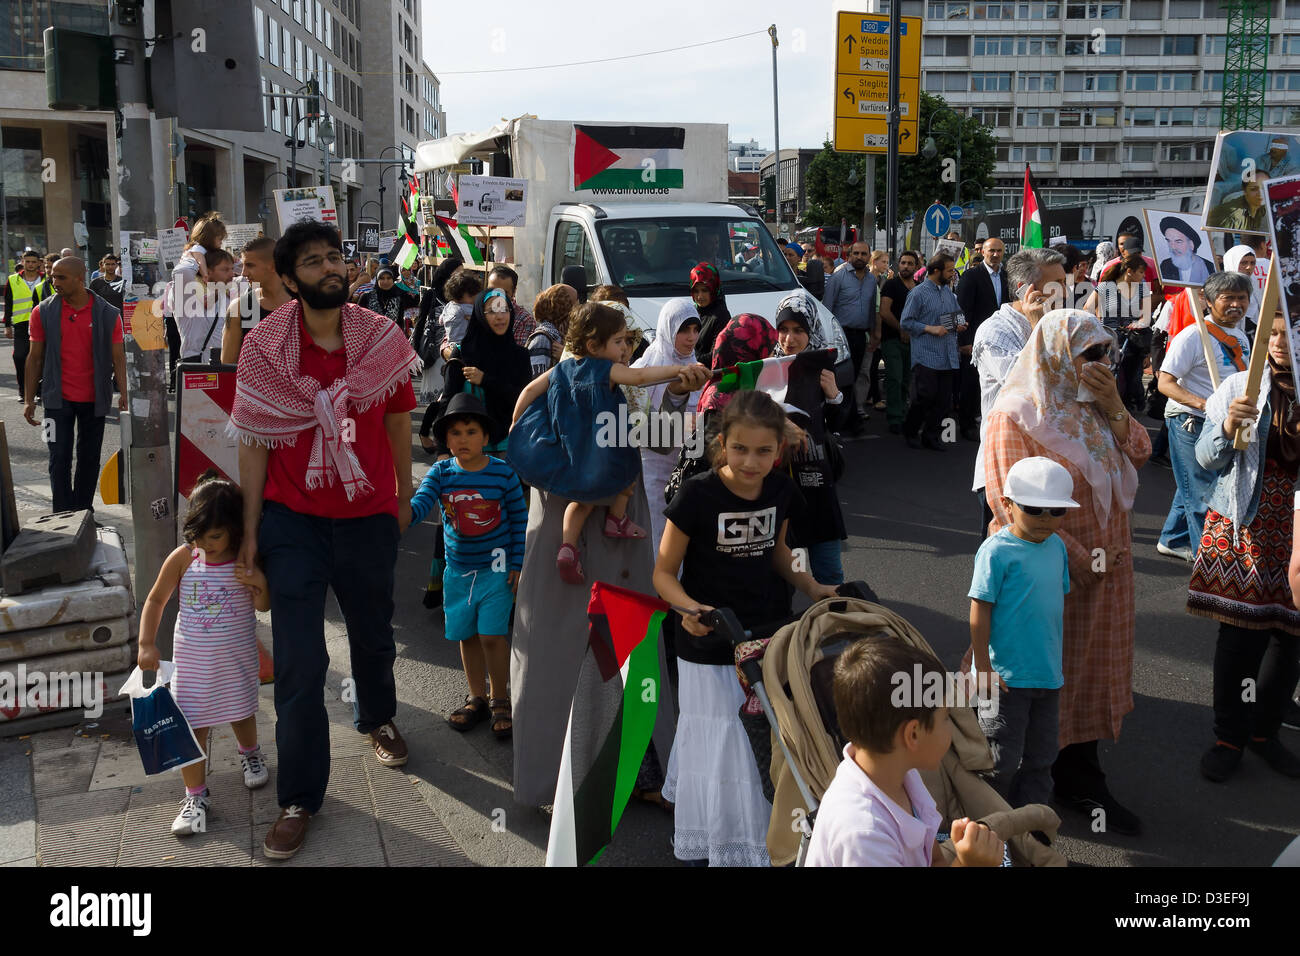 Al-Quds Day. Demonstrations against Israel, and its control of Jerusalem. Solidarity with the Palestinian people - Stock Image